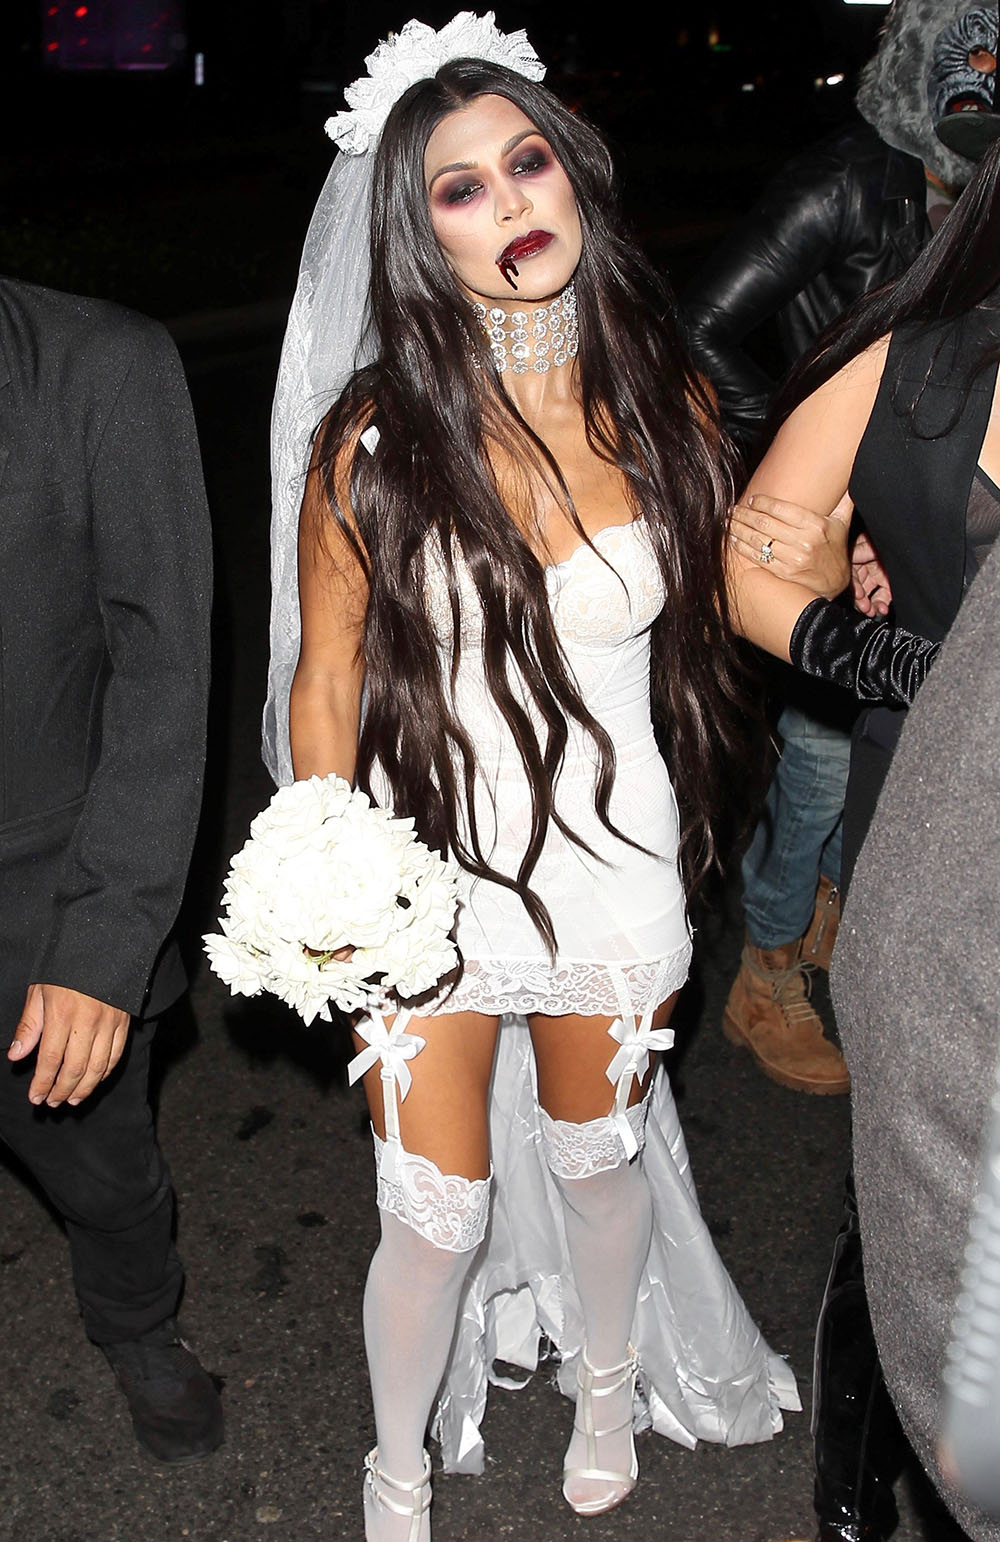 Kourtney Kardashian Makes Her Dead Bride Costume Look Sexy